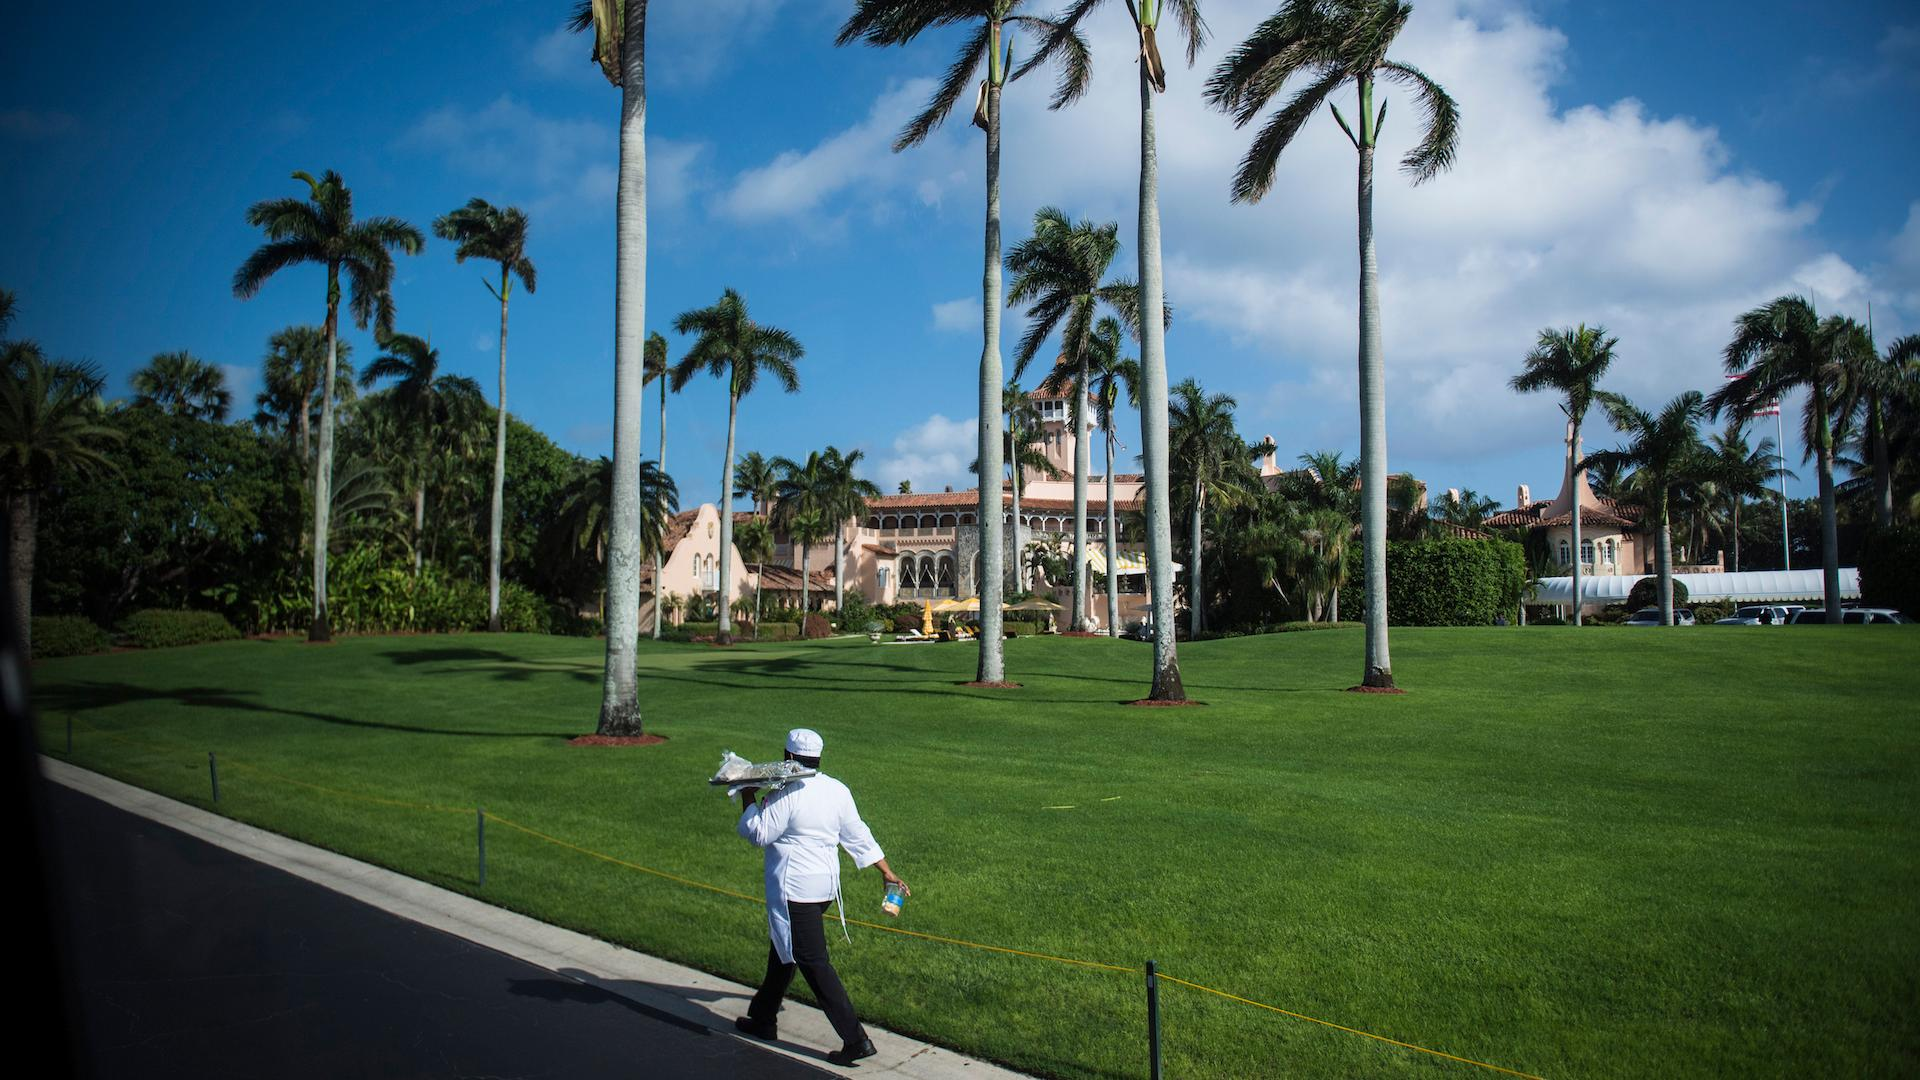 Trump's Mar-a-Lago Obtains Visas For 70 Foreign Workers